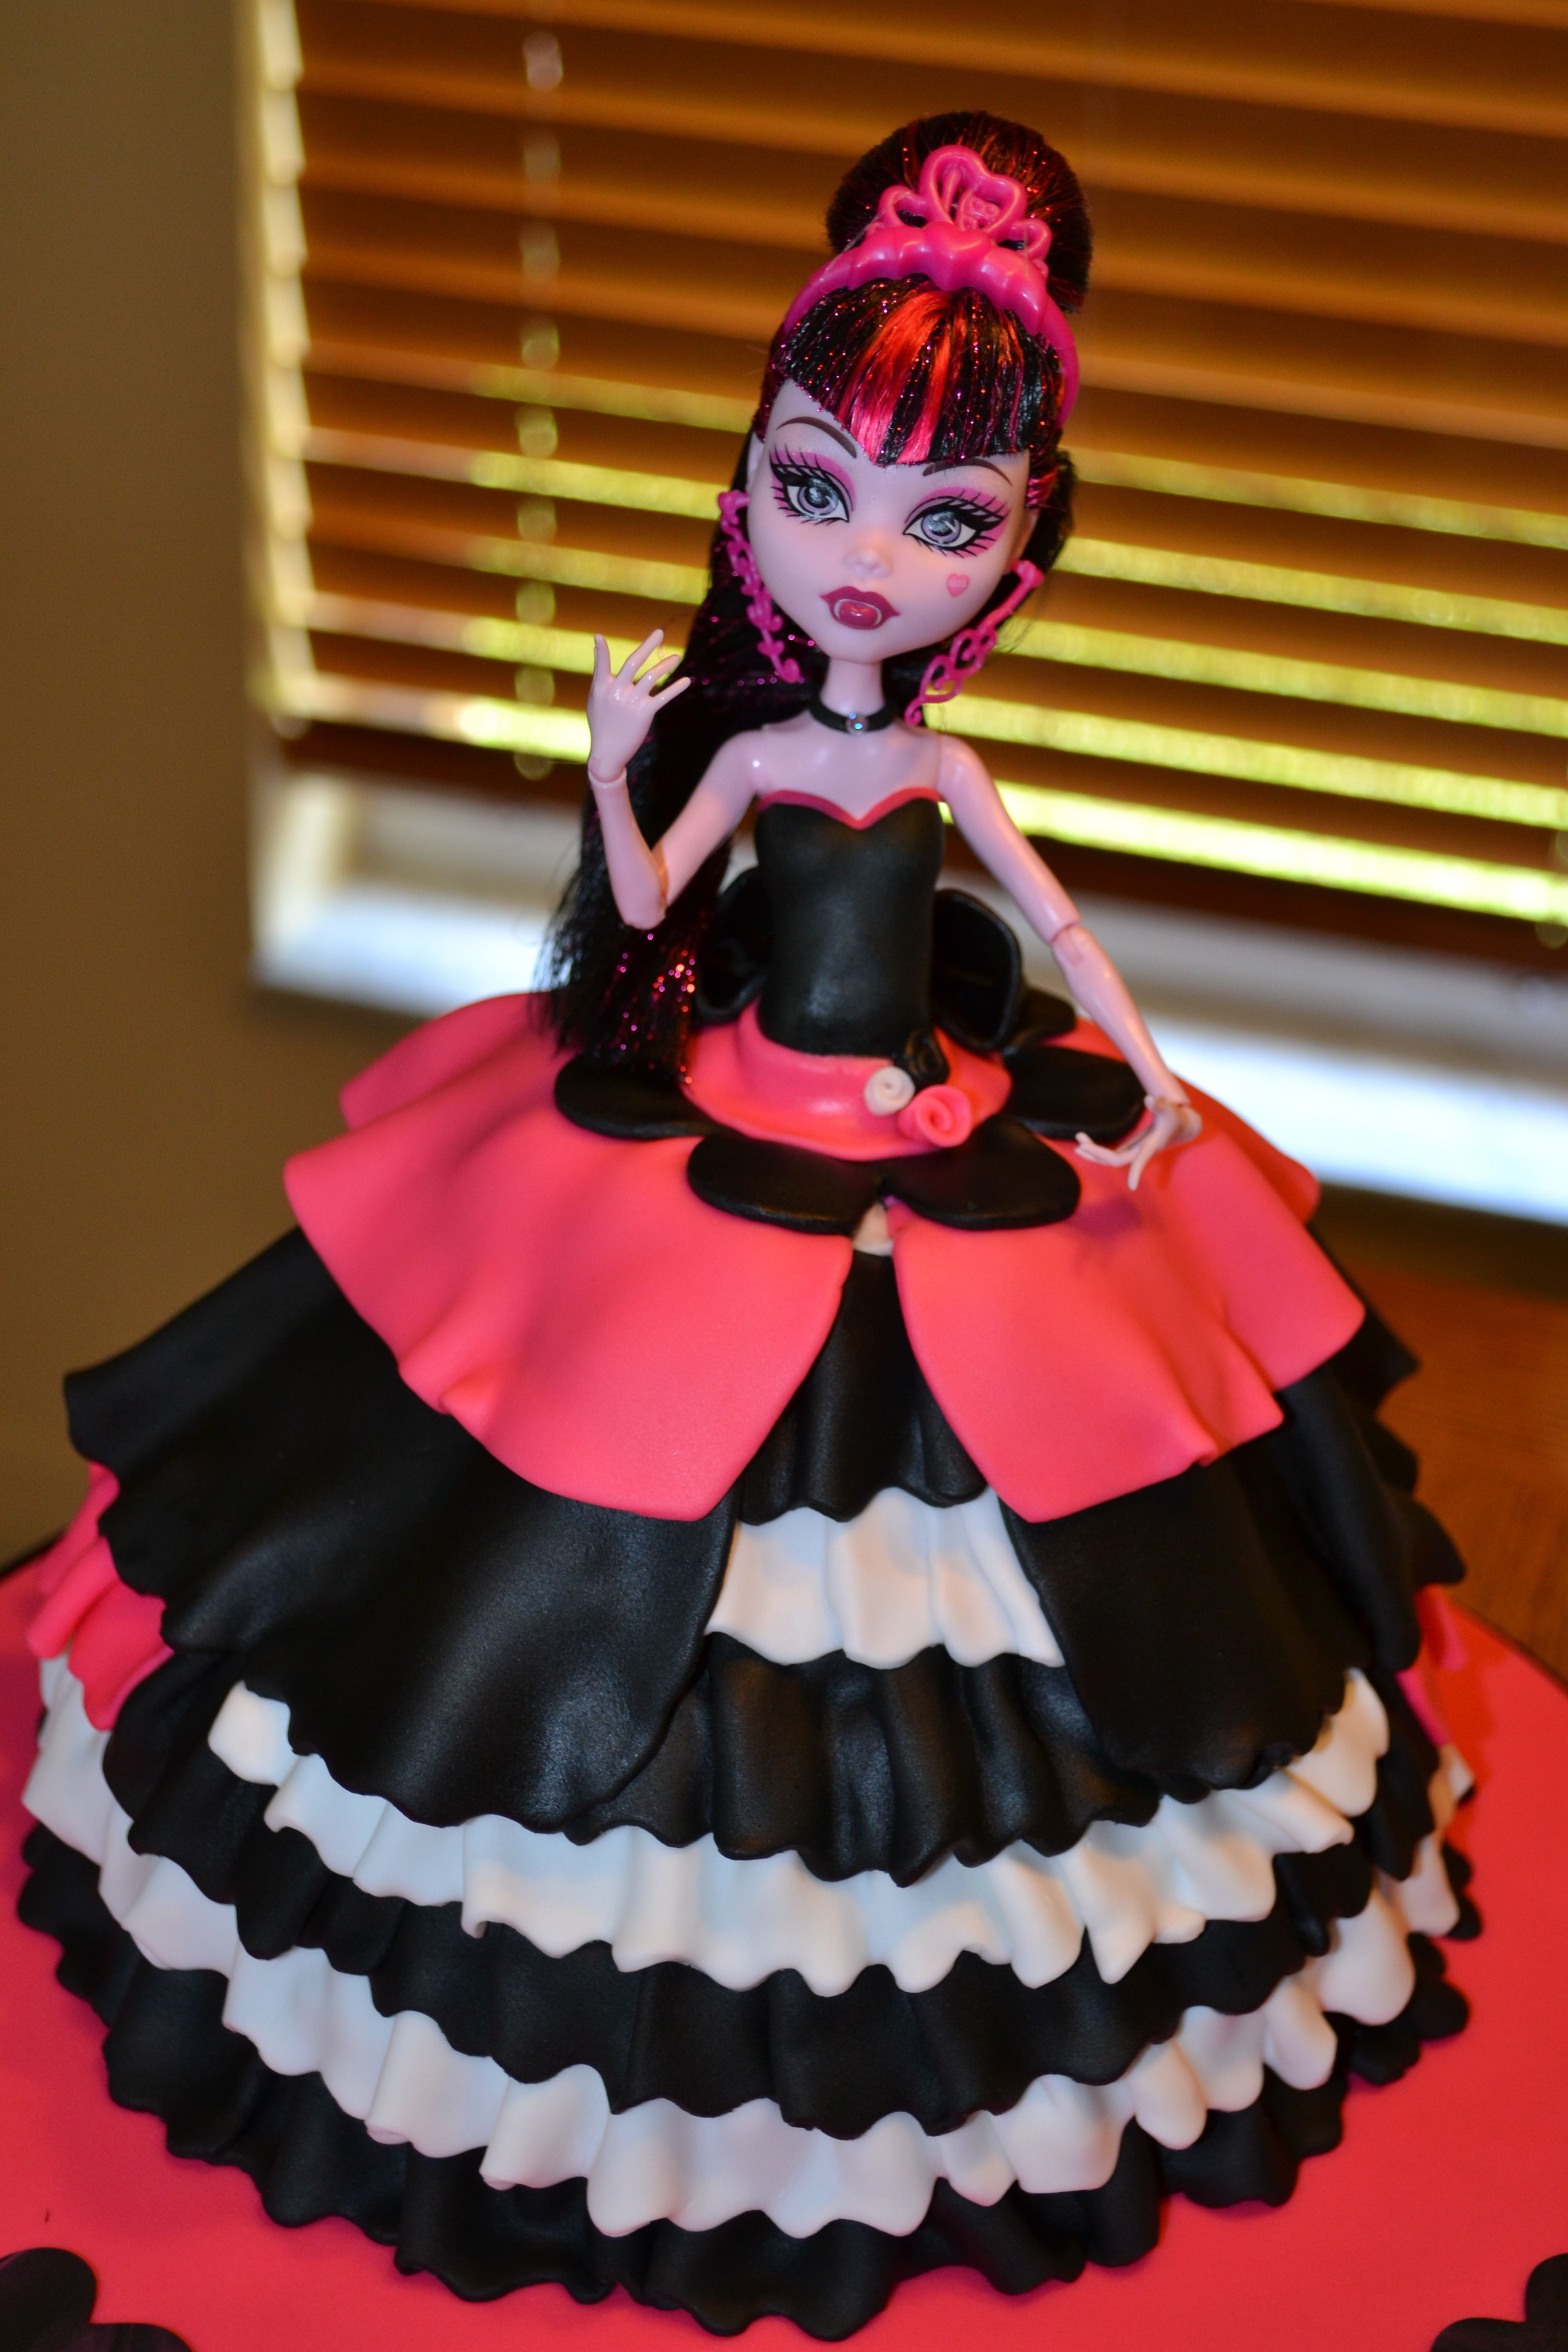 Monster High Doll Cake Kenzie Wants One For Her Birthday